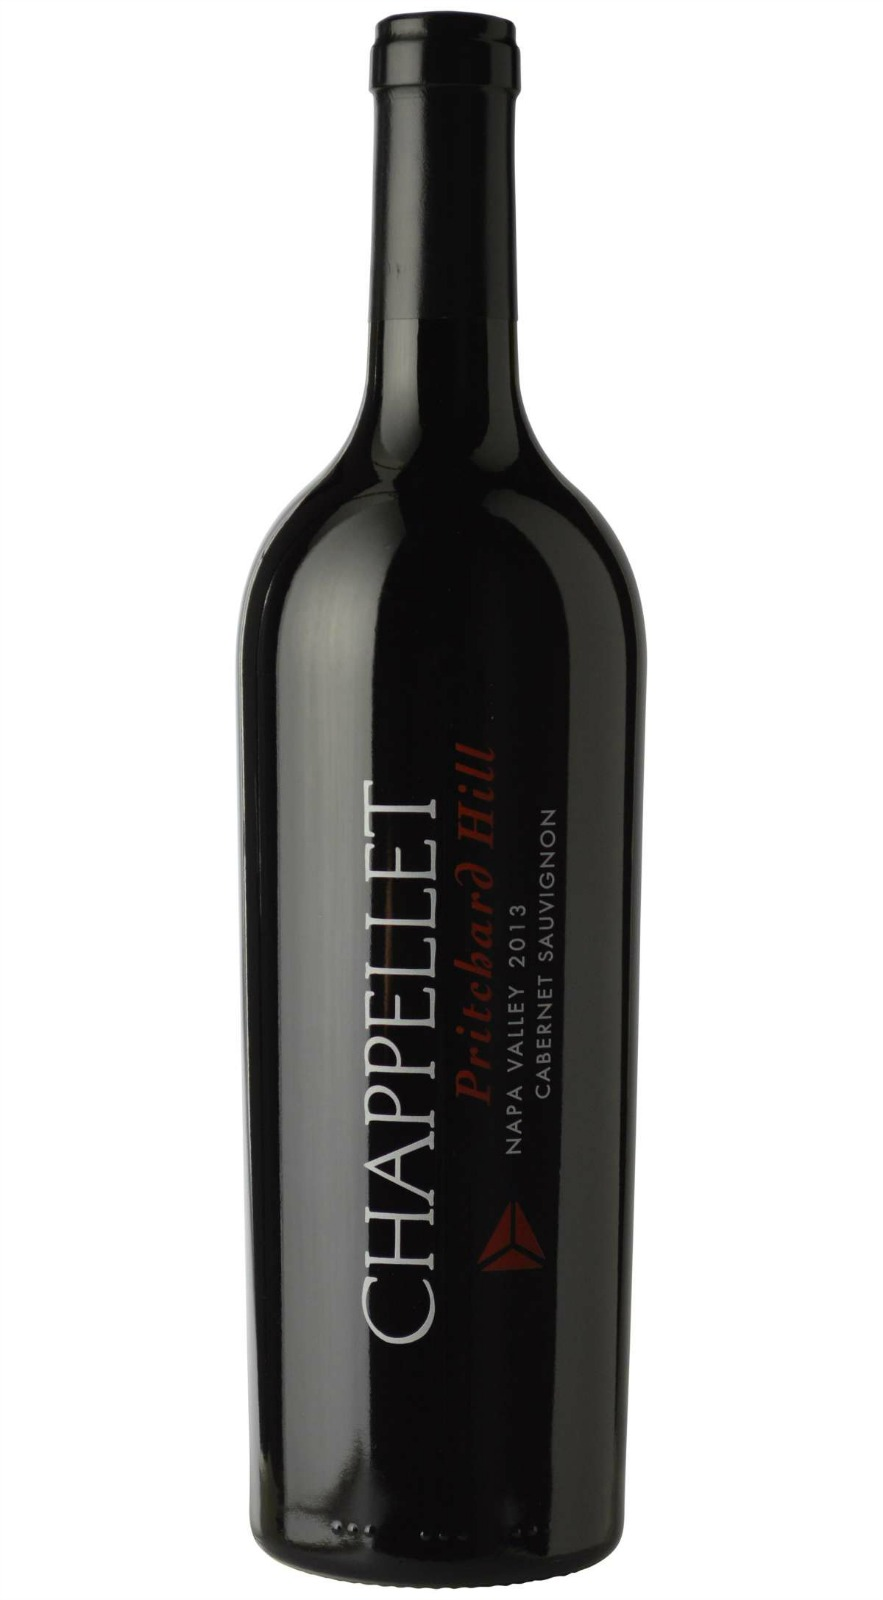 Chappellet Cabernet Sauvignon Pritchard Hill 2014, 750ml (WA99, VN97, JS98) from The BPW - Merchants of rare and fine wines.